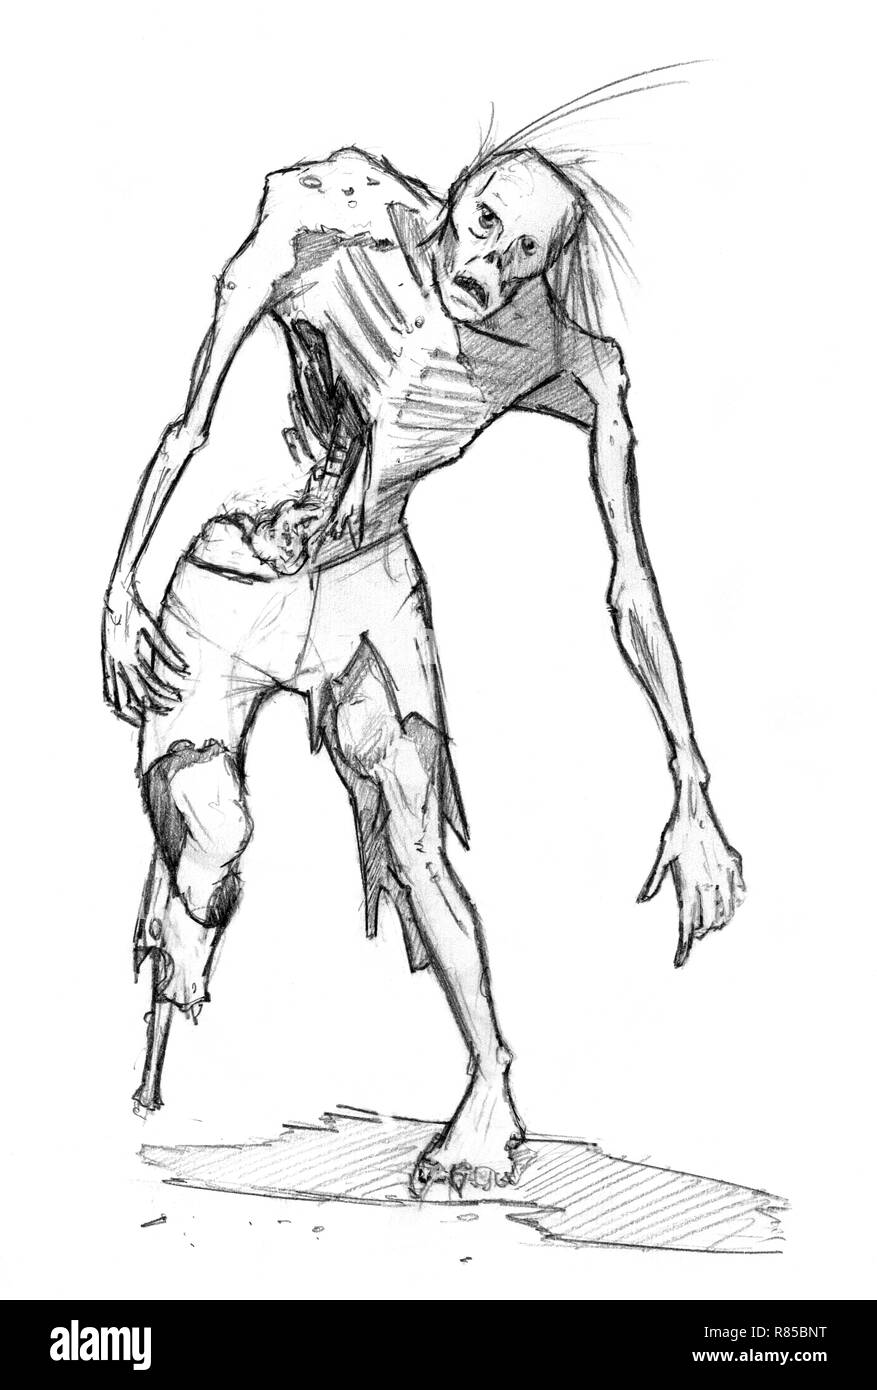 Black grunge rough pencil sketch of zombie